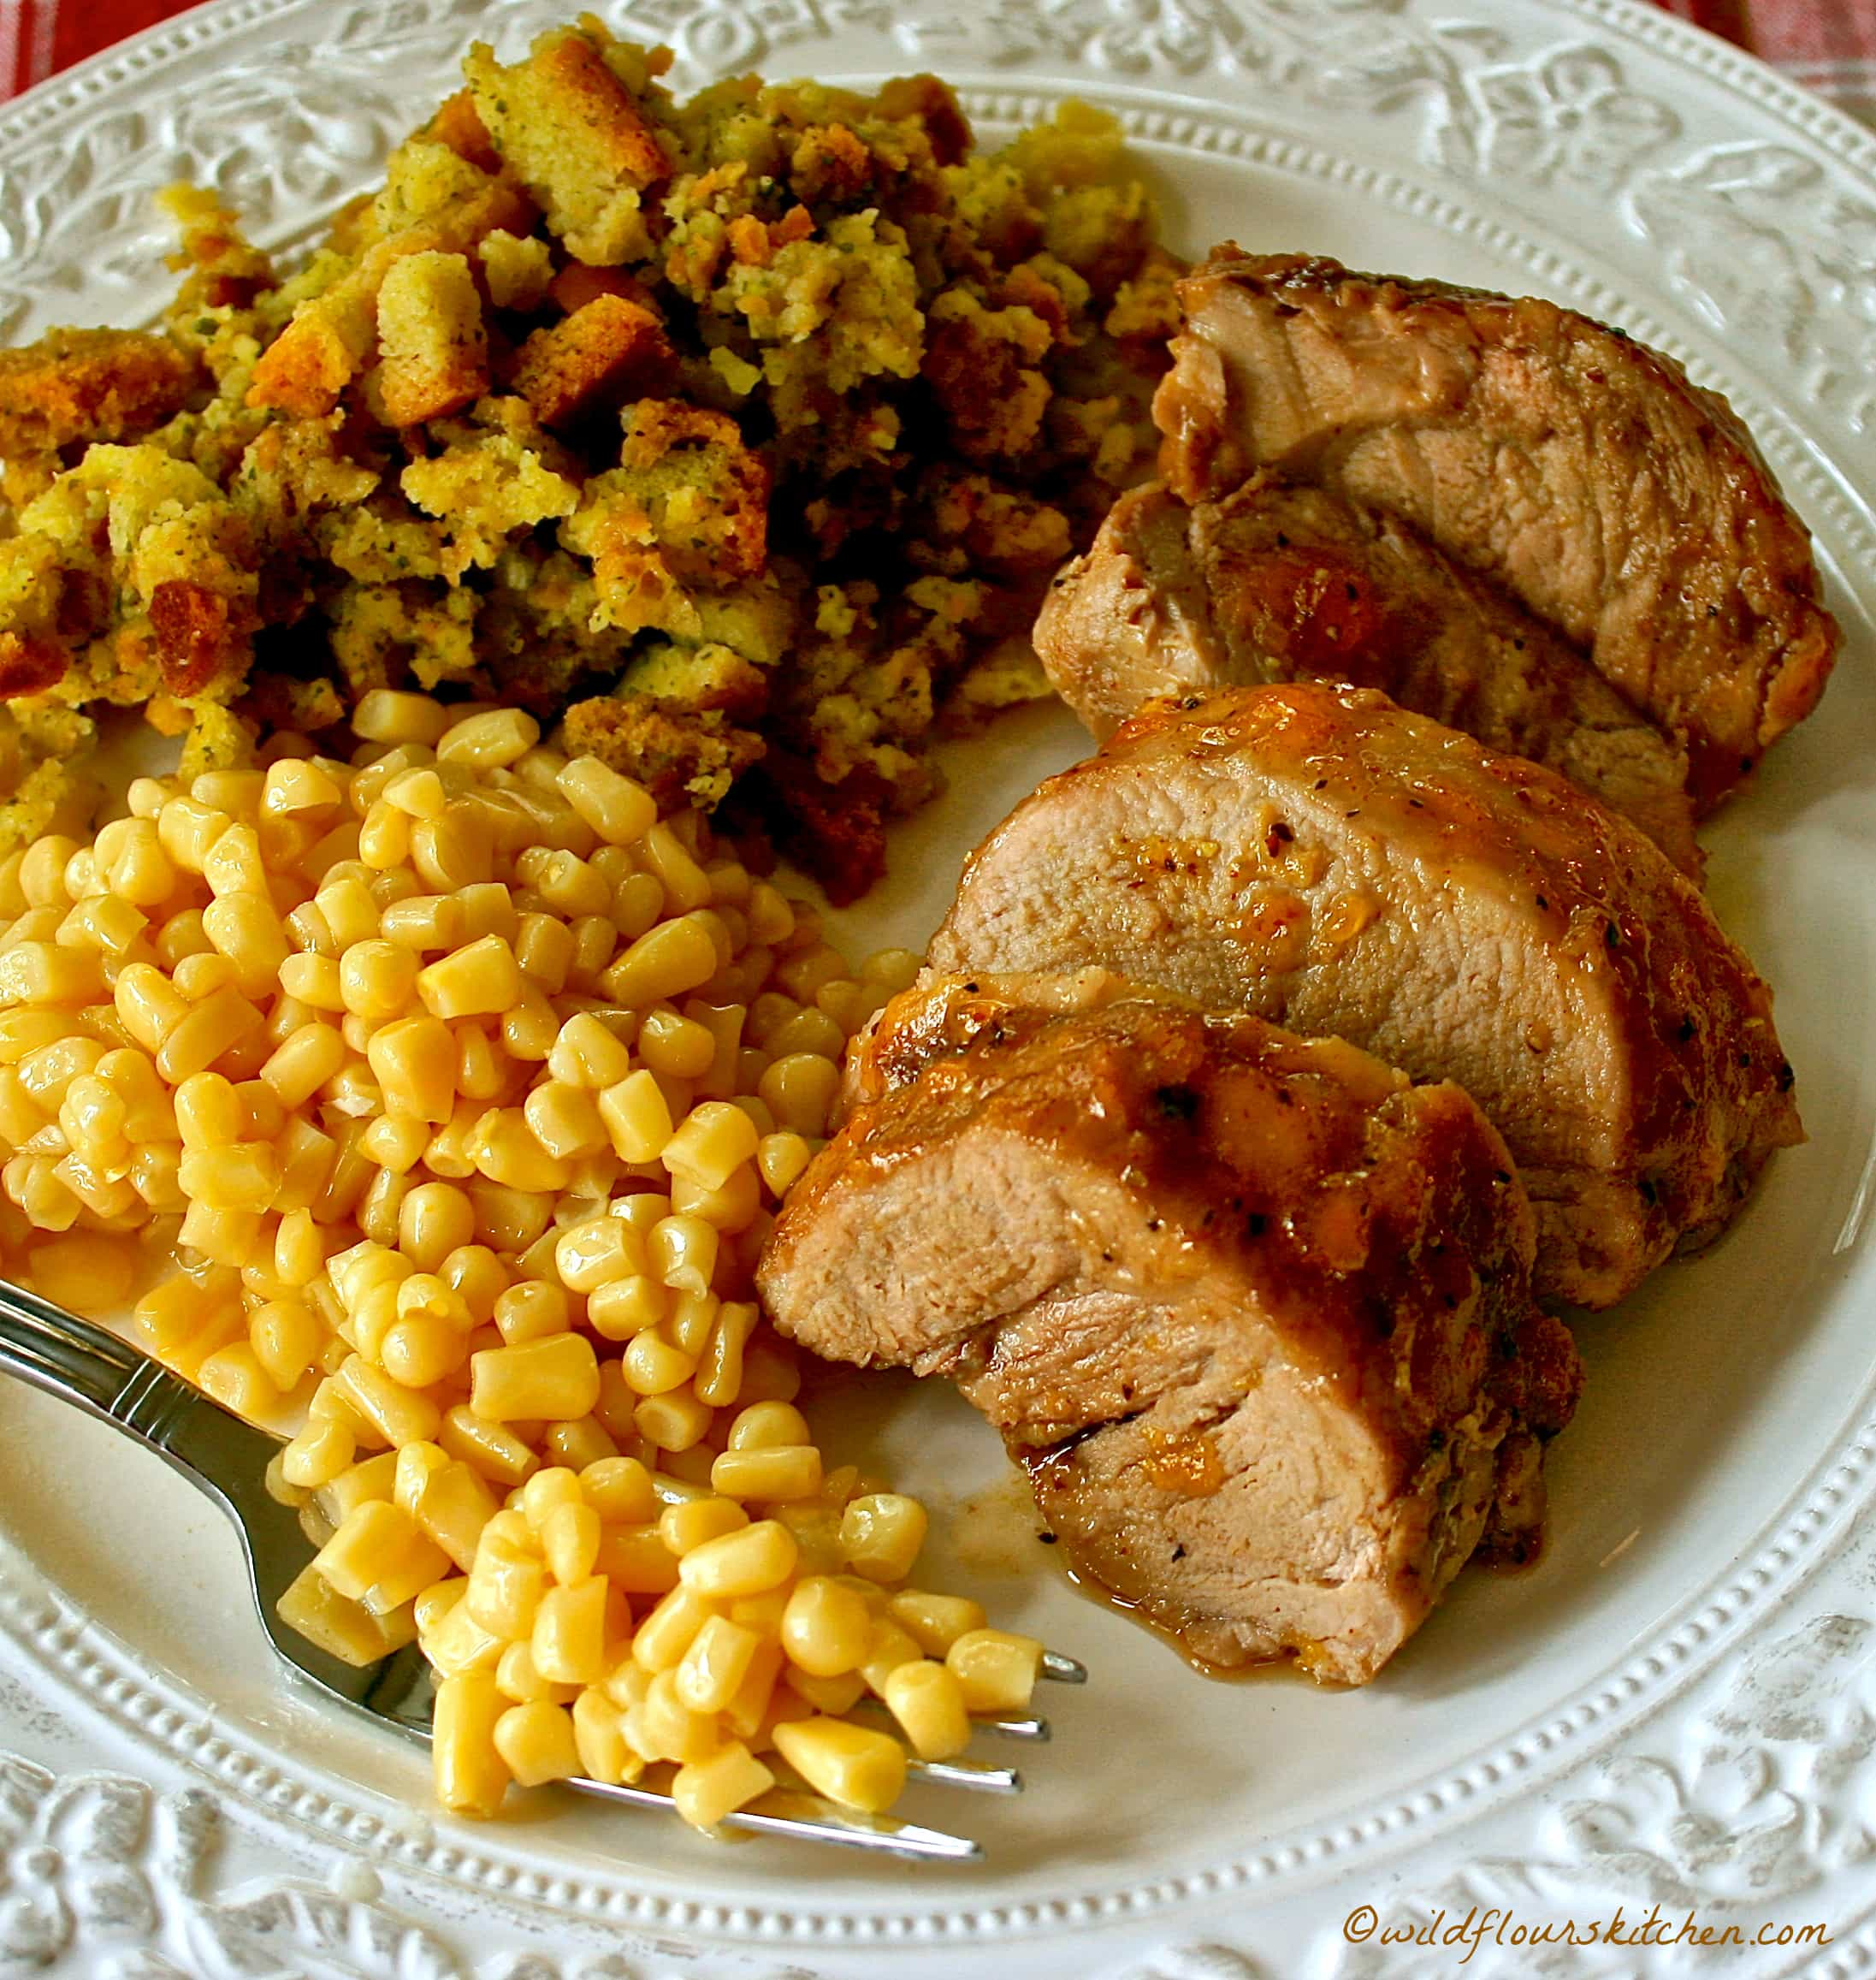 Pork Tenderloin Meal: Easy Peachy Honey Mustard Roast Pork Tenderloin